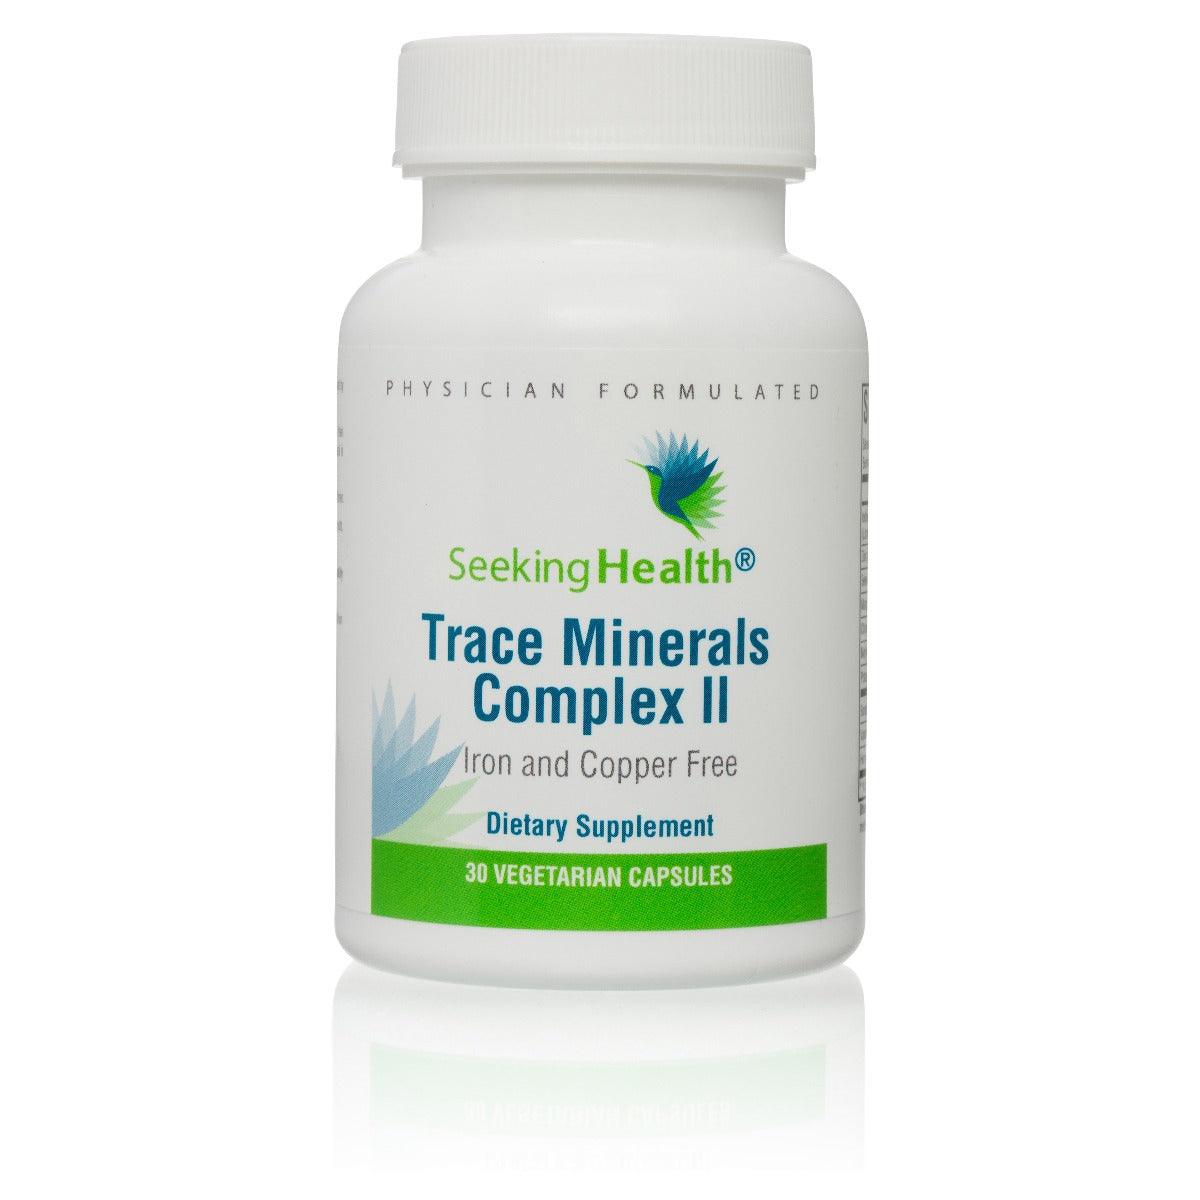 Trace Minerals Complex II Iron and Copper Free - 30 Capsules